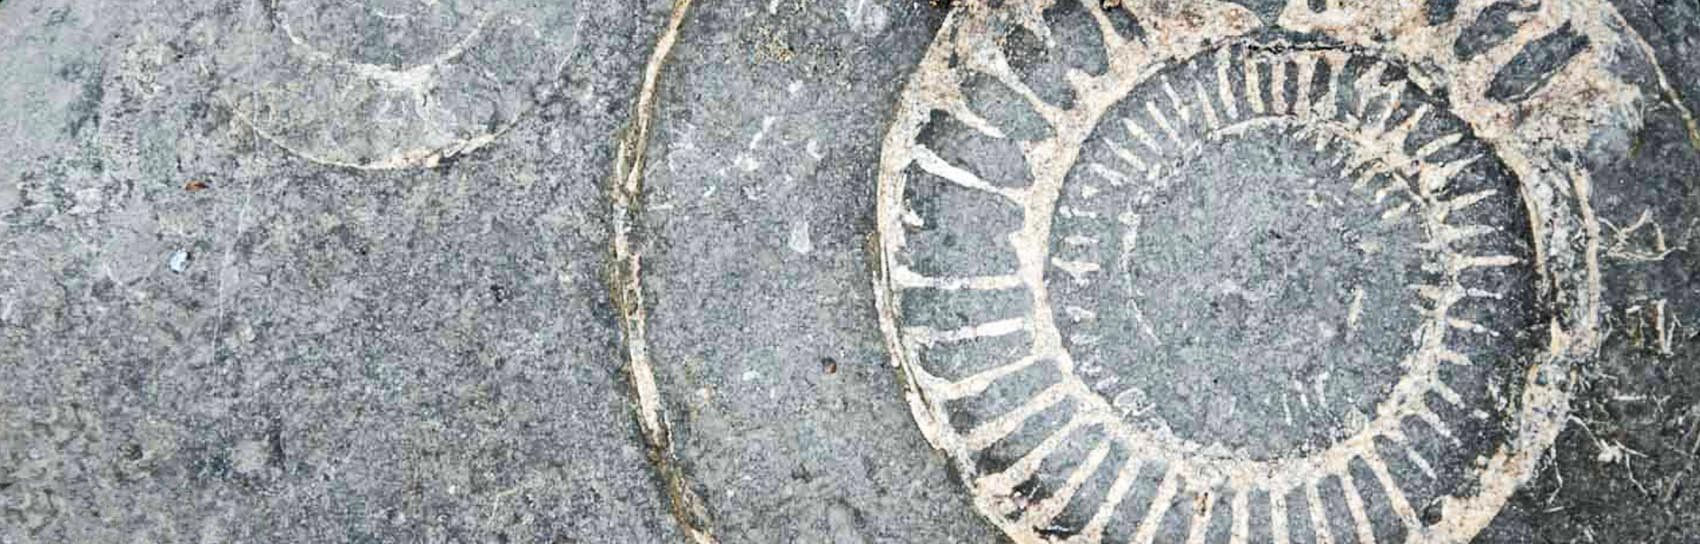 An ammonite fossil at Charmouth in Dorset. Photograph by ALEX GRAEME